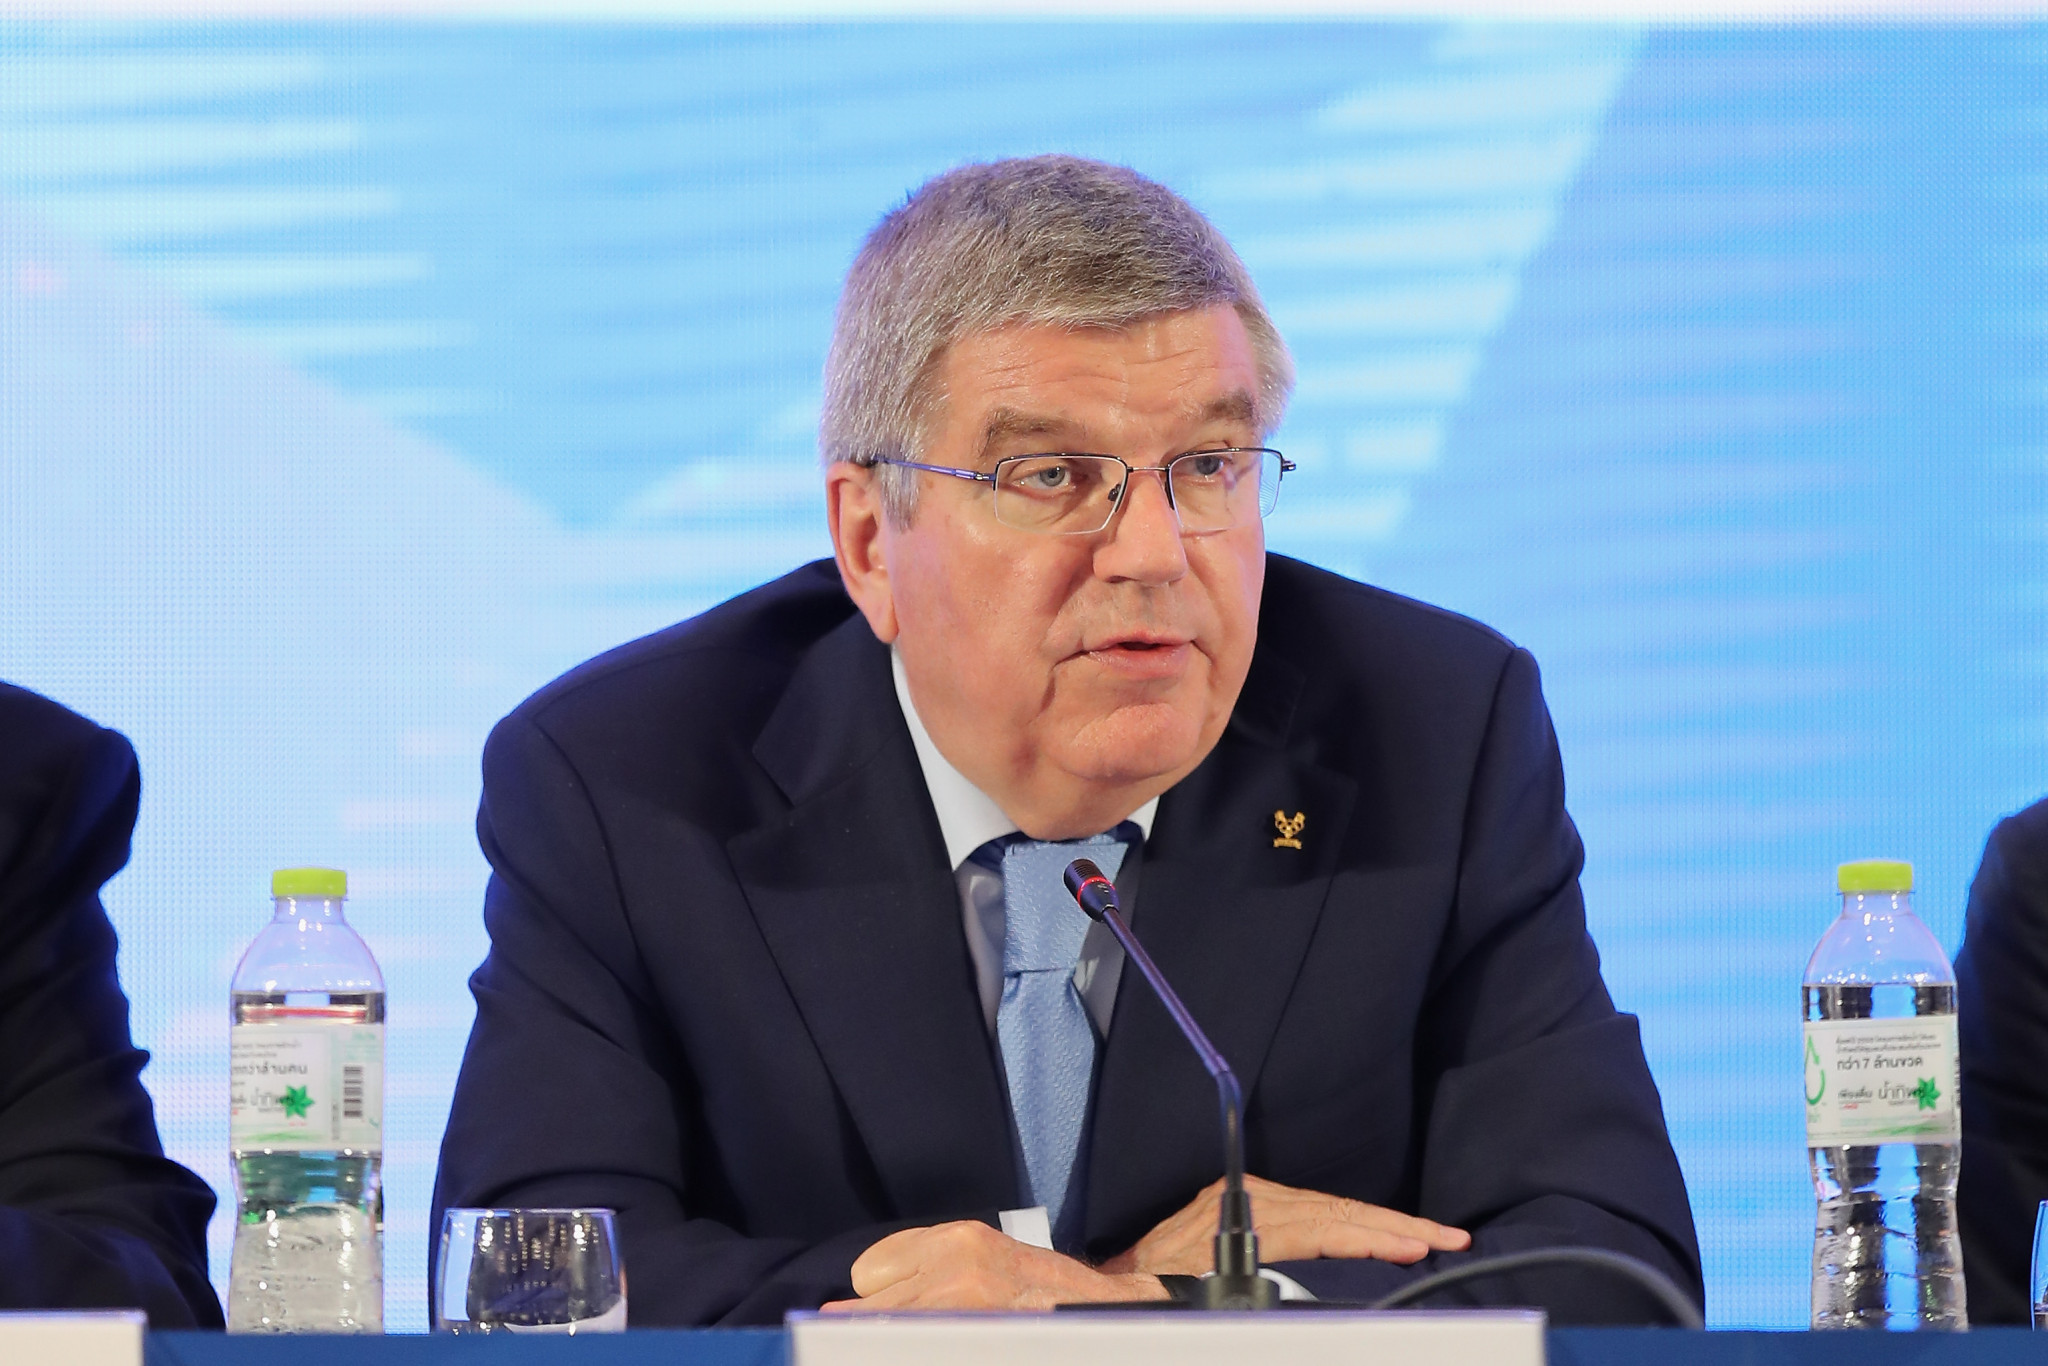 IOC President Thomas Bach is expected to attend the Closing Ceremony of the 2018 Asian Games ©Getty Images